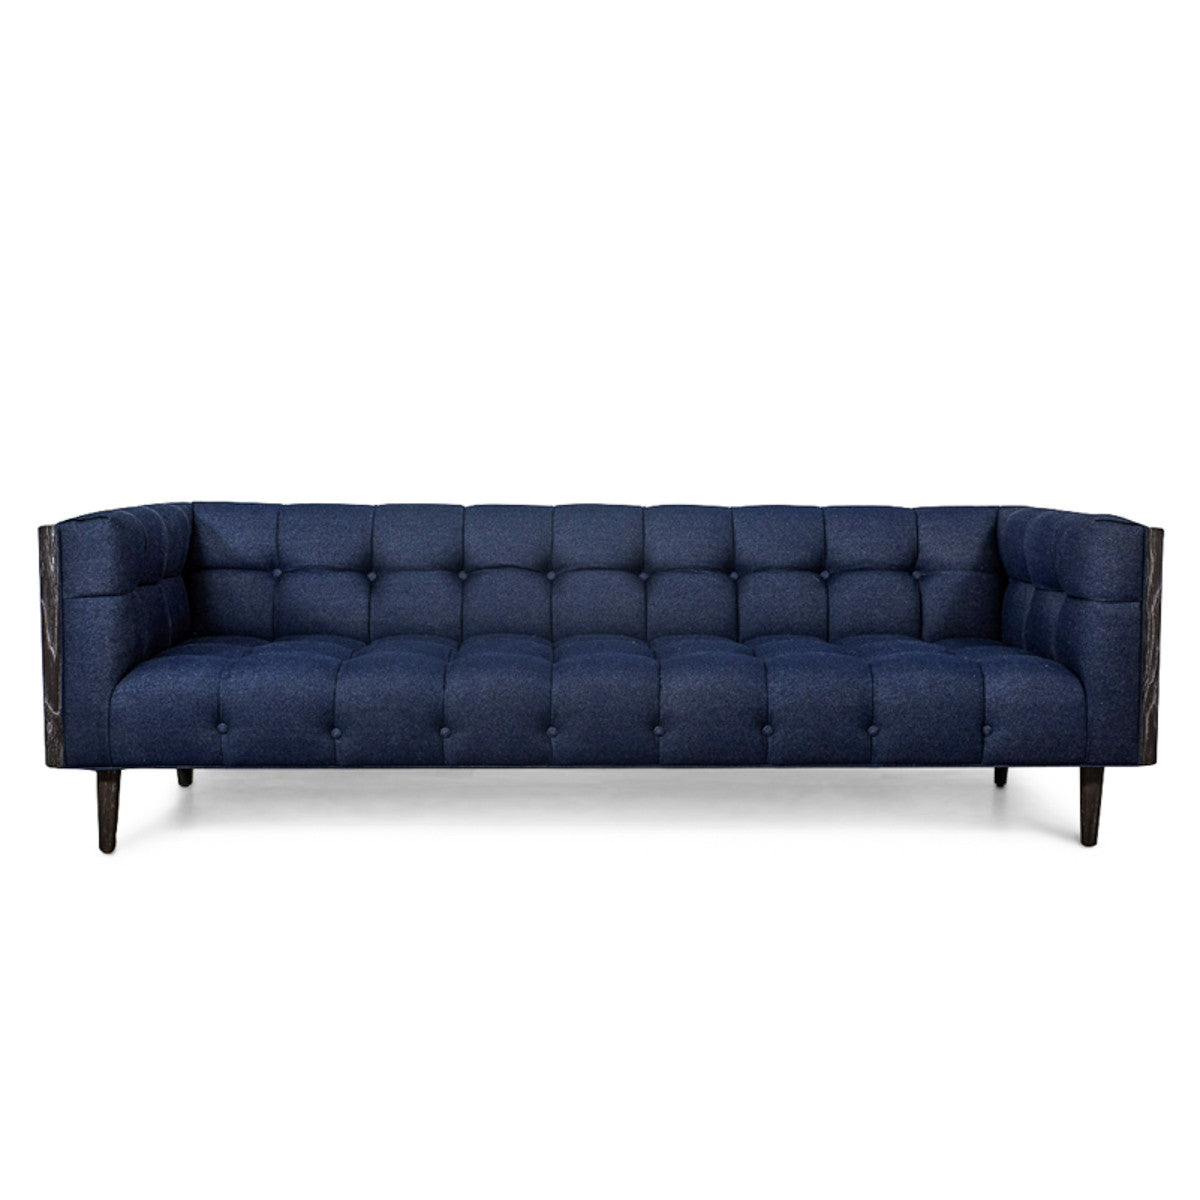 Mid Century Sofa In Dark Navy Raw Denim